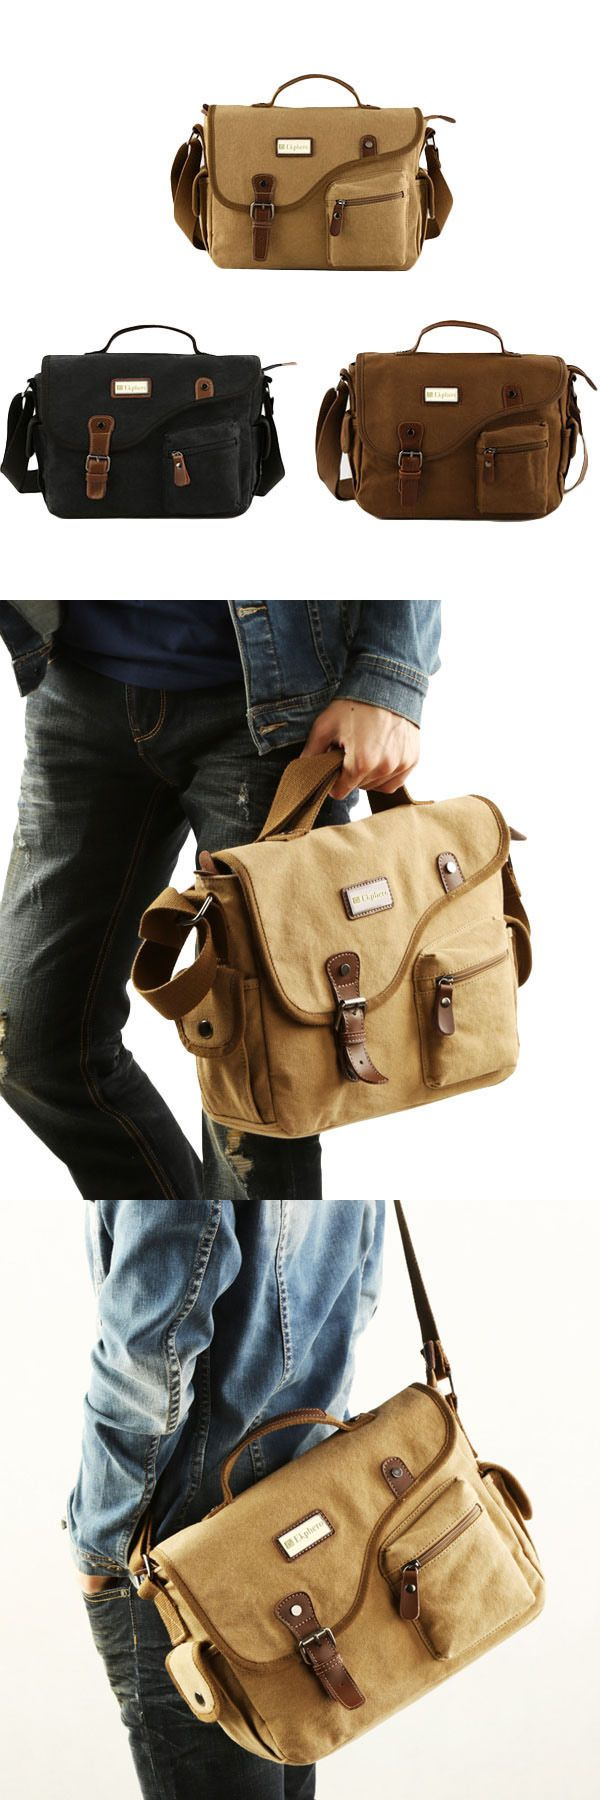 US$36.45+Free shipping. Men Canvas Casual Bag, Outdoor Shoulder Bag, Crossbody Bag, Handbag. Color: Khaki, Black, Coffee. Made Of Canvas.Three usages of huge capacity, what are you waiting for?